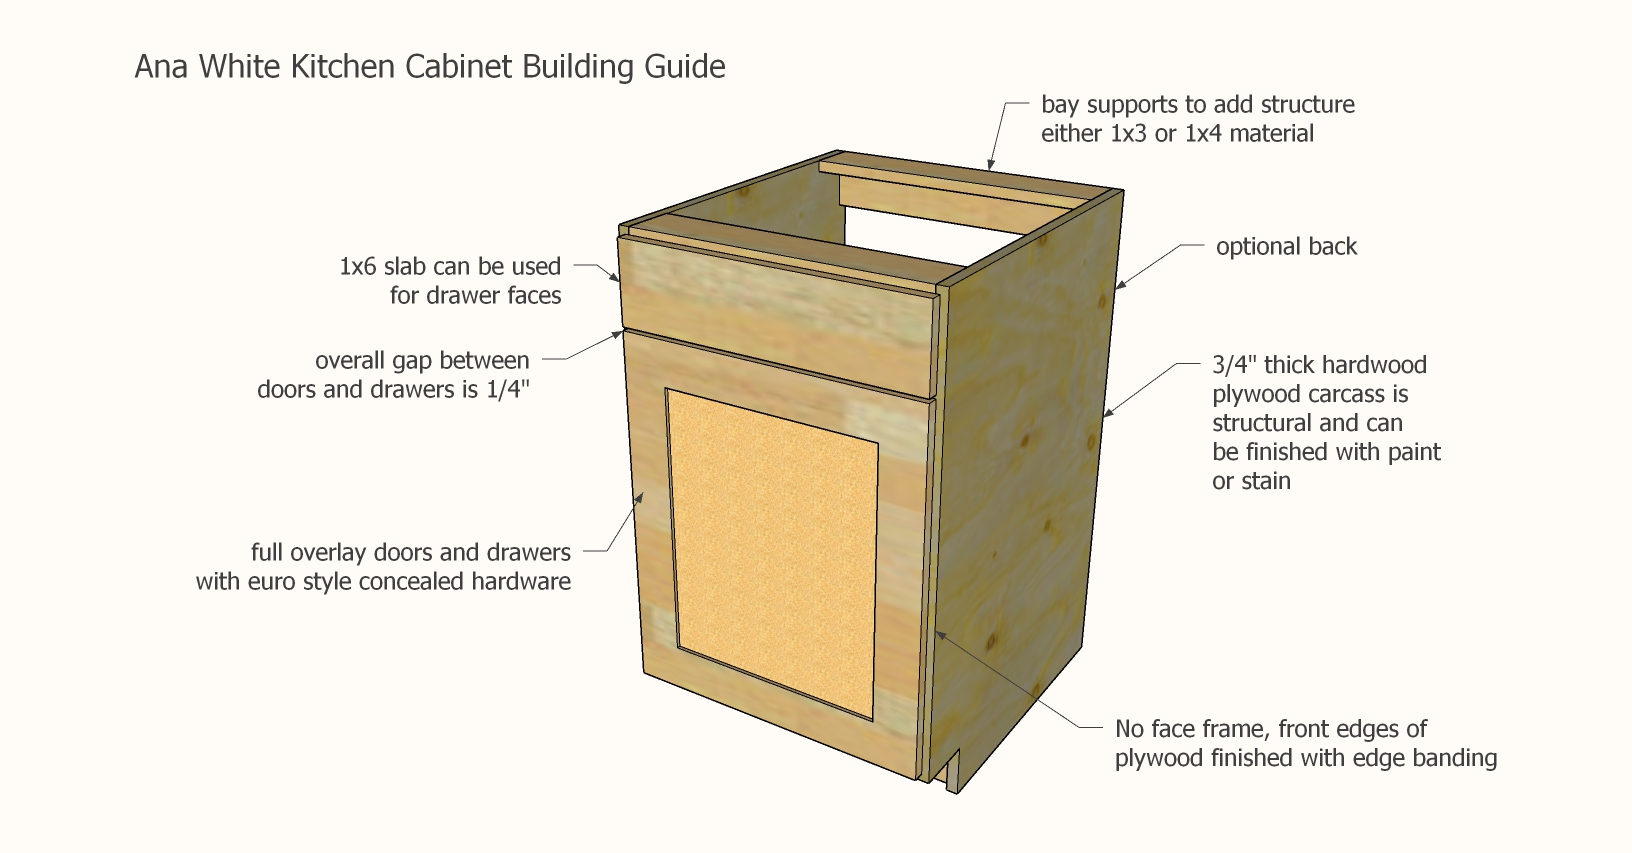 Frameless Kitchen Cabinet Building Guide Ana White